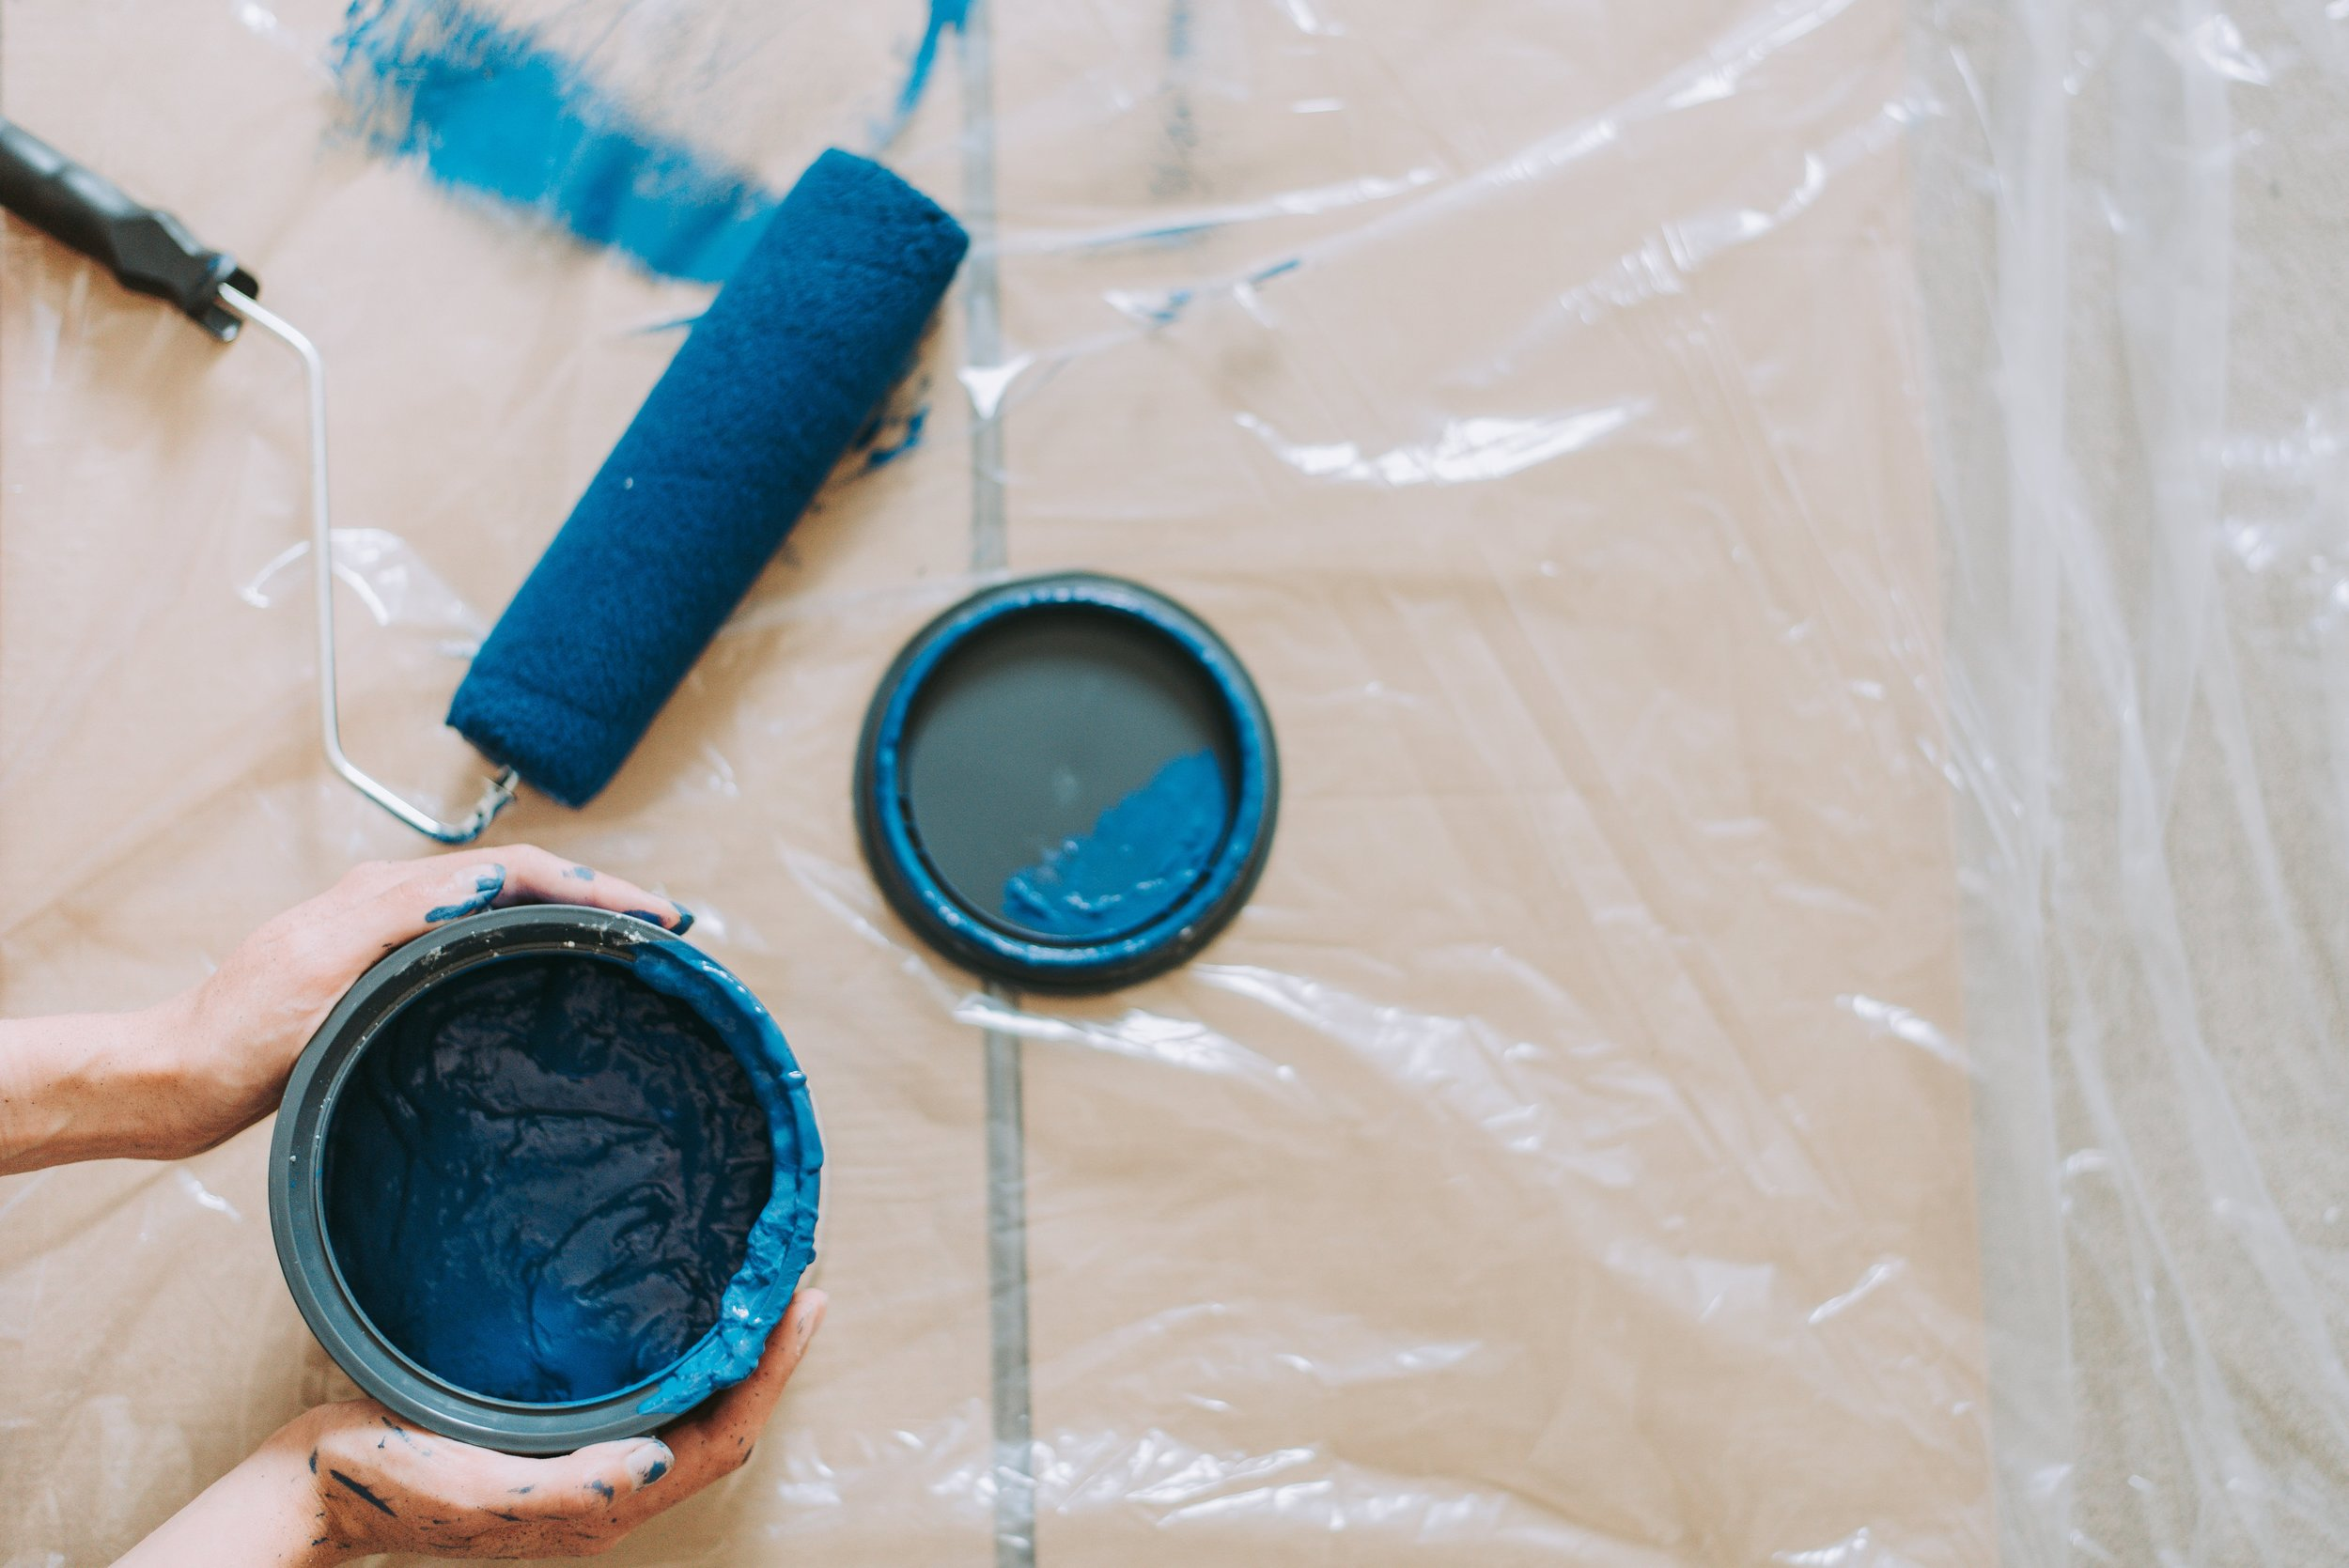 blue-blue-paint-brush-1166431.jpg